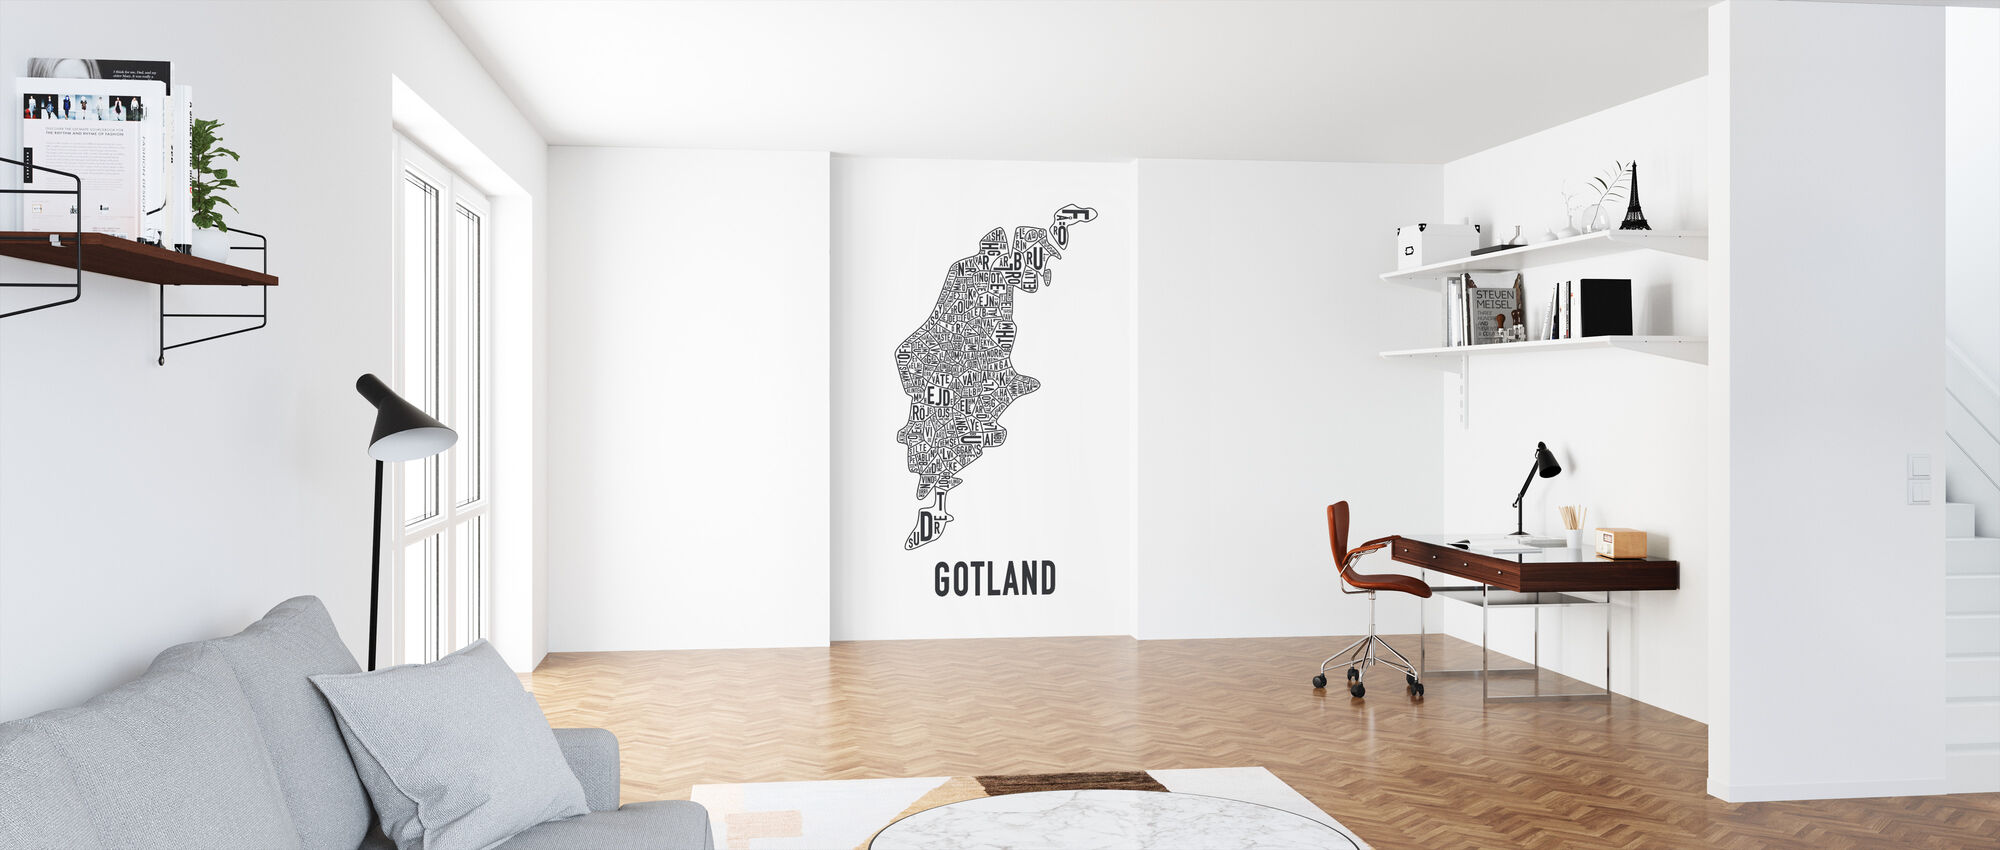 Gotland - Wallpaper - Office